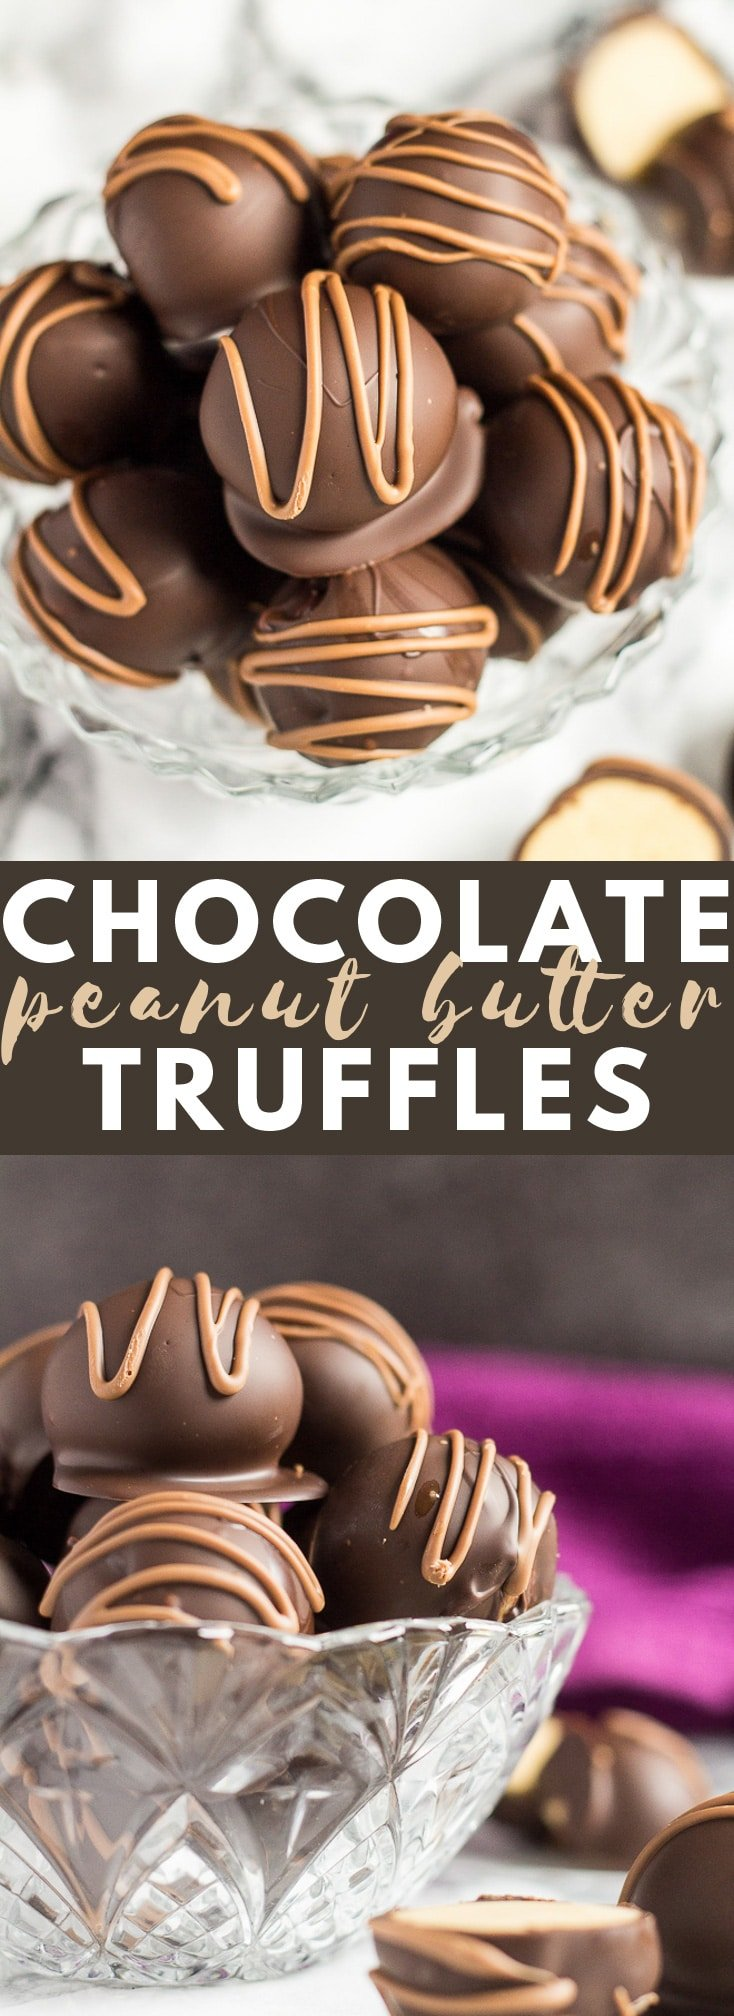 No-Bake Peanut Butter Truffles- Deliciously creamy bite-sized peanut butter balls, coated with dark chocolate, and drizzled with milk chocolate! #chocolate #peanutbutter #truffles #recipe